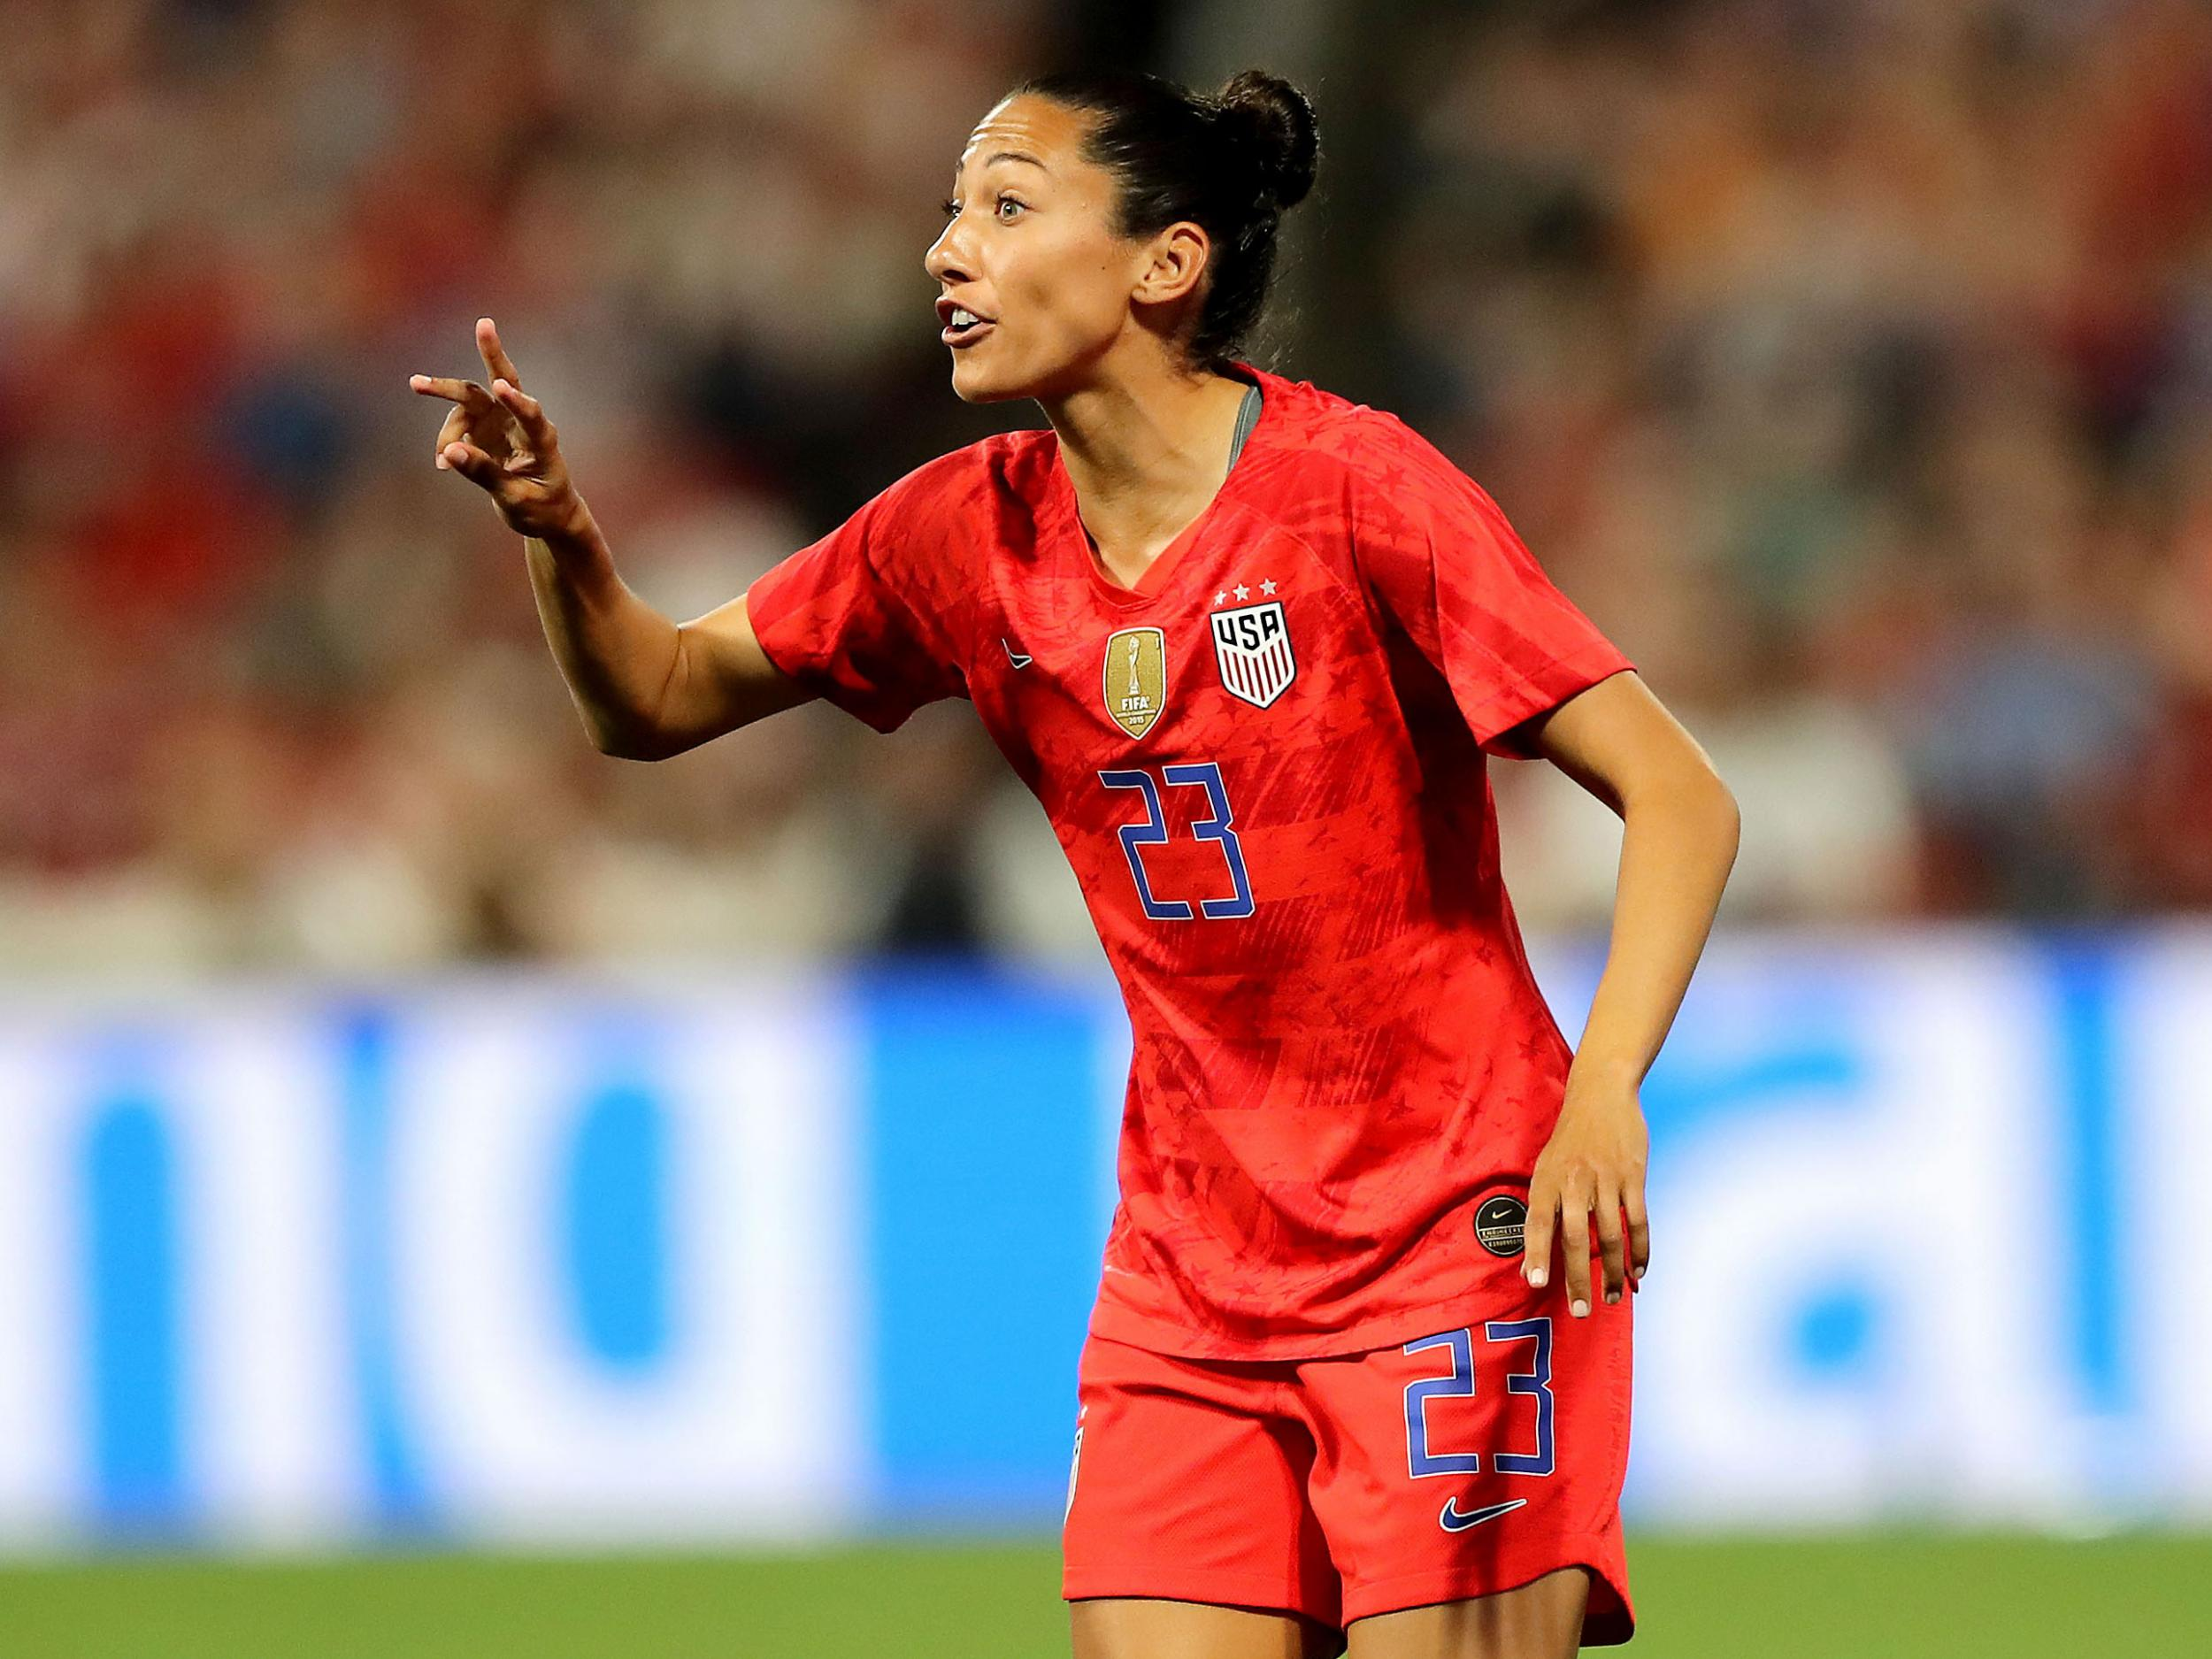 USA vs England result: Lionesses knocked out of Women's